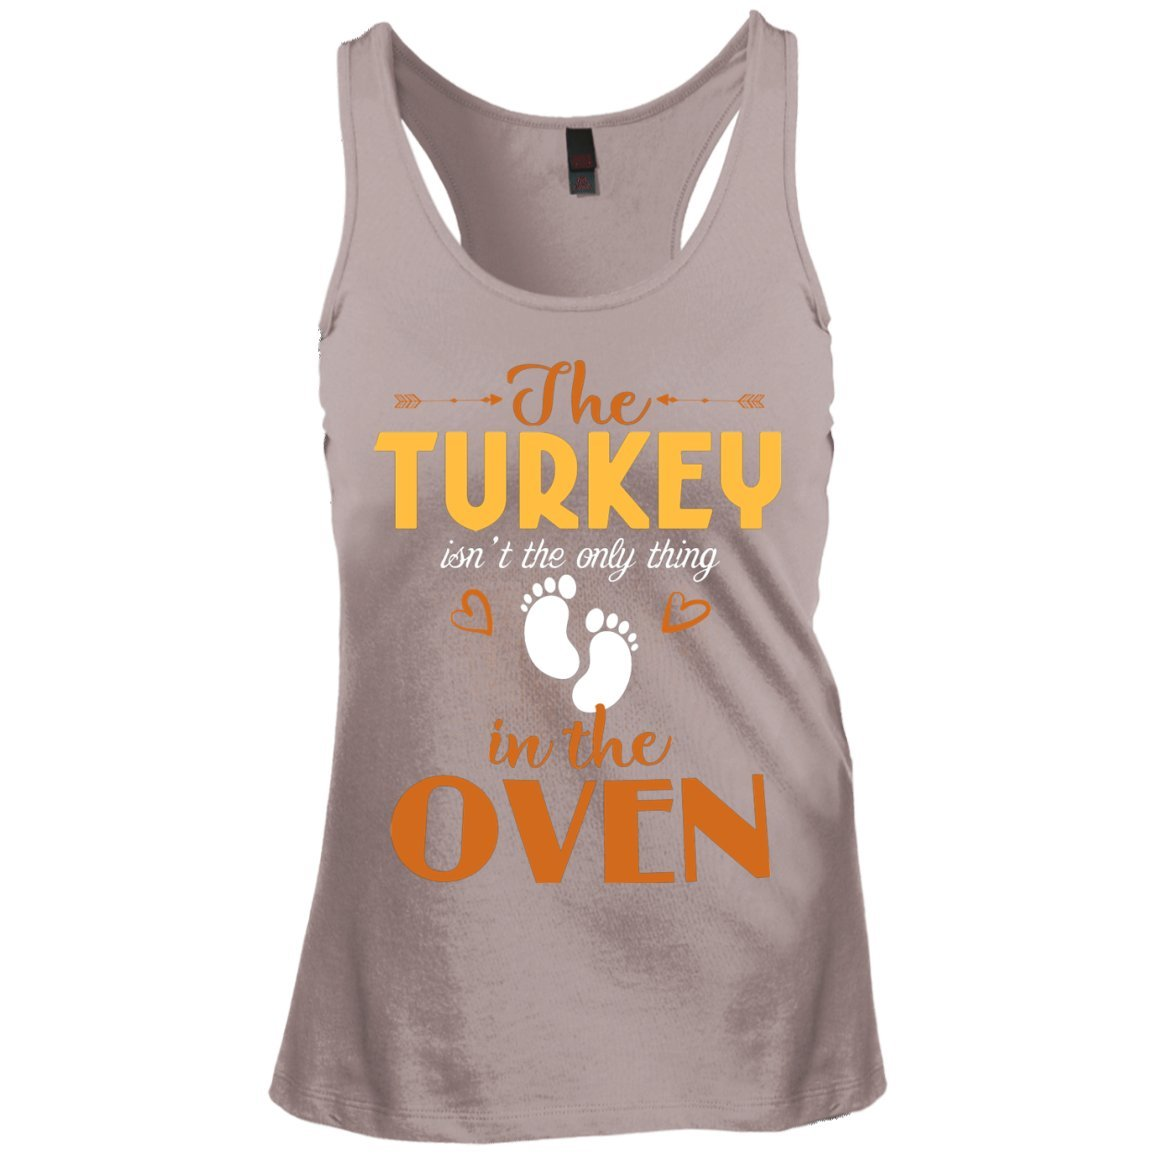 eden tee The Turkey Isn't The Only Thing in The Oven Tank Top